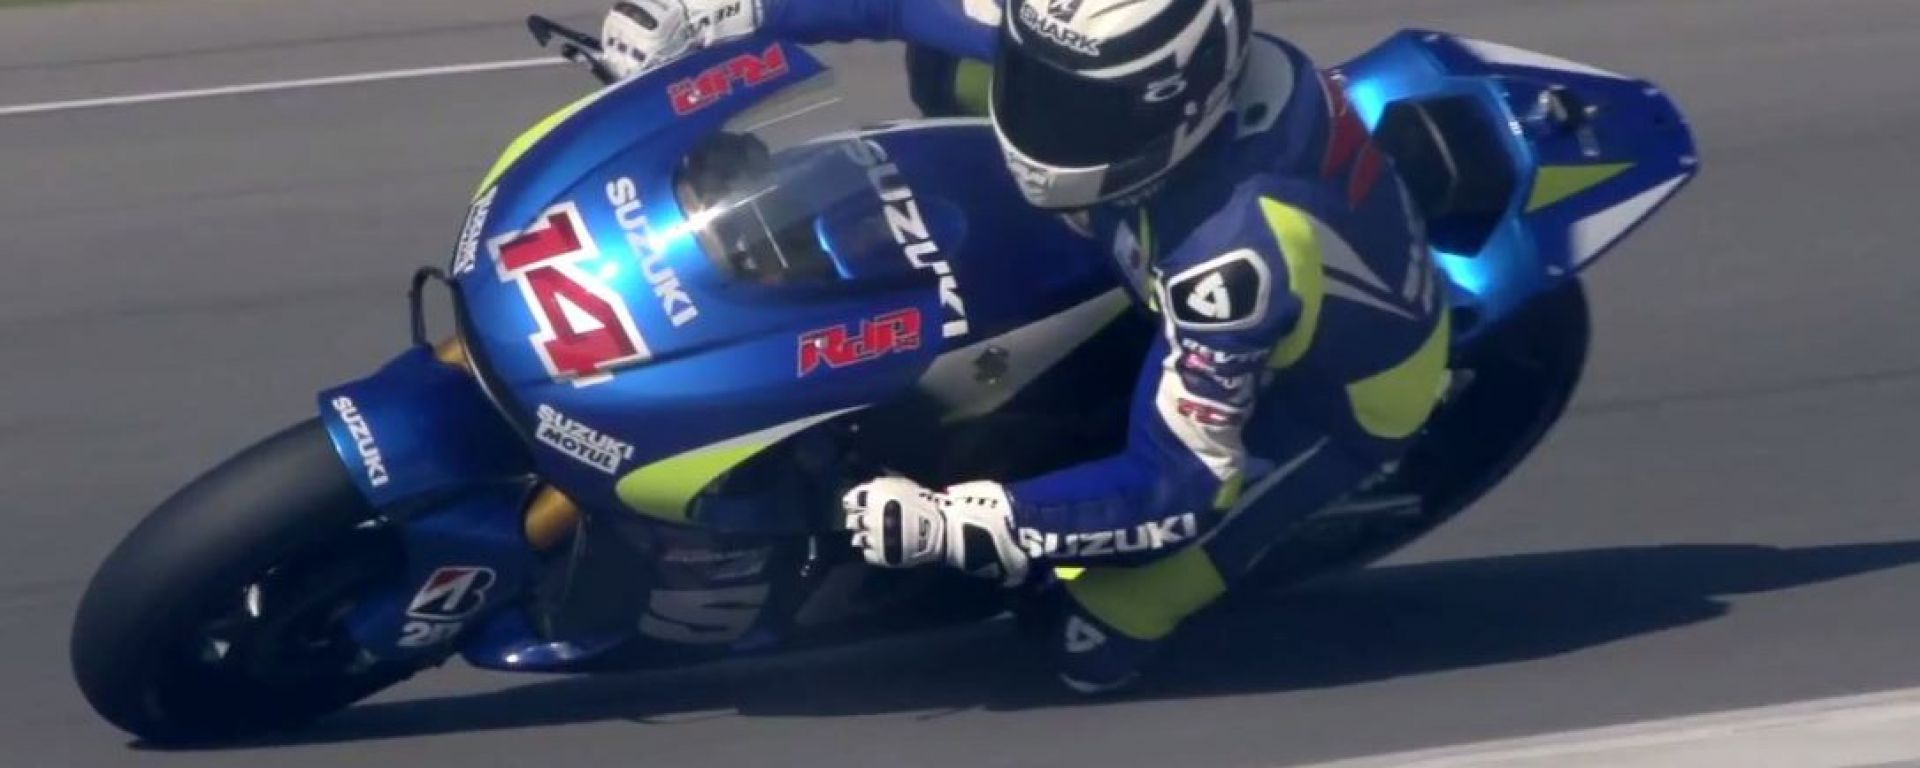 Suzuki Moto GP Development Report # 4